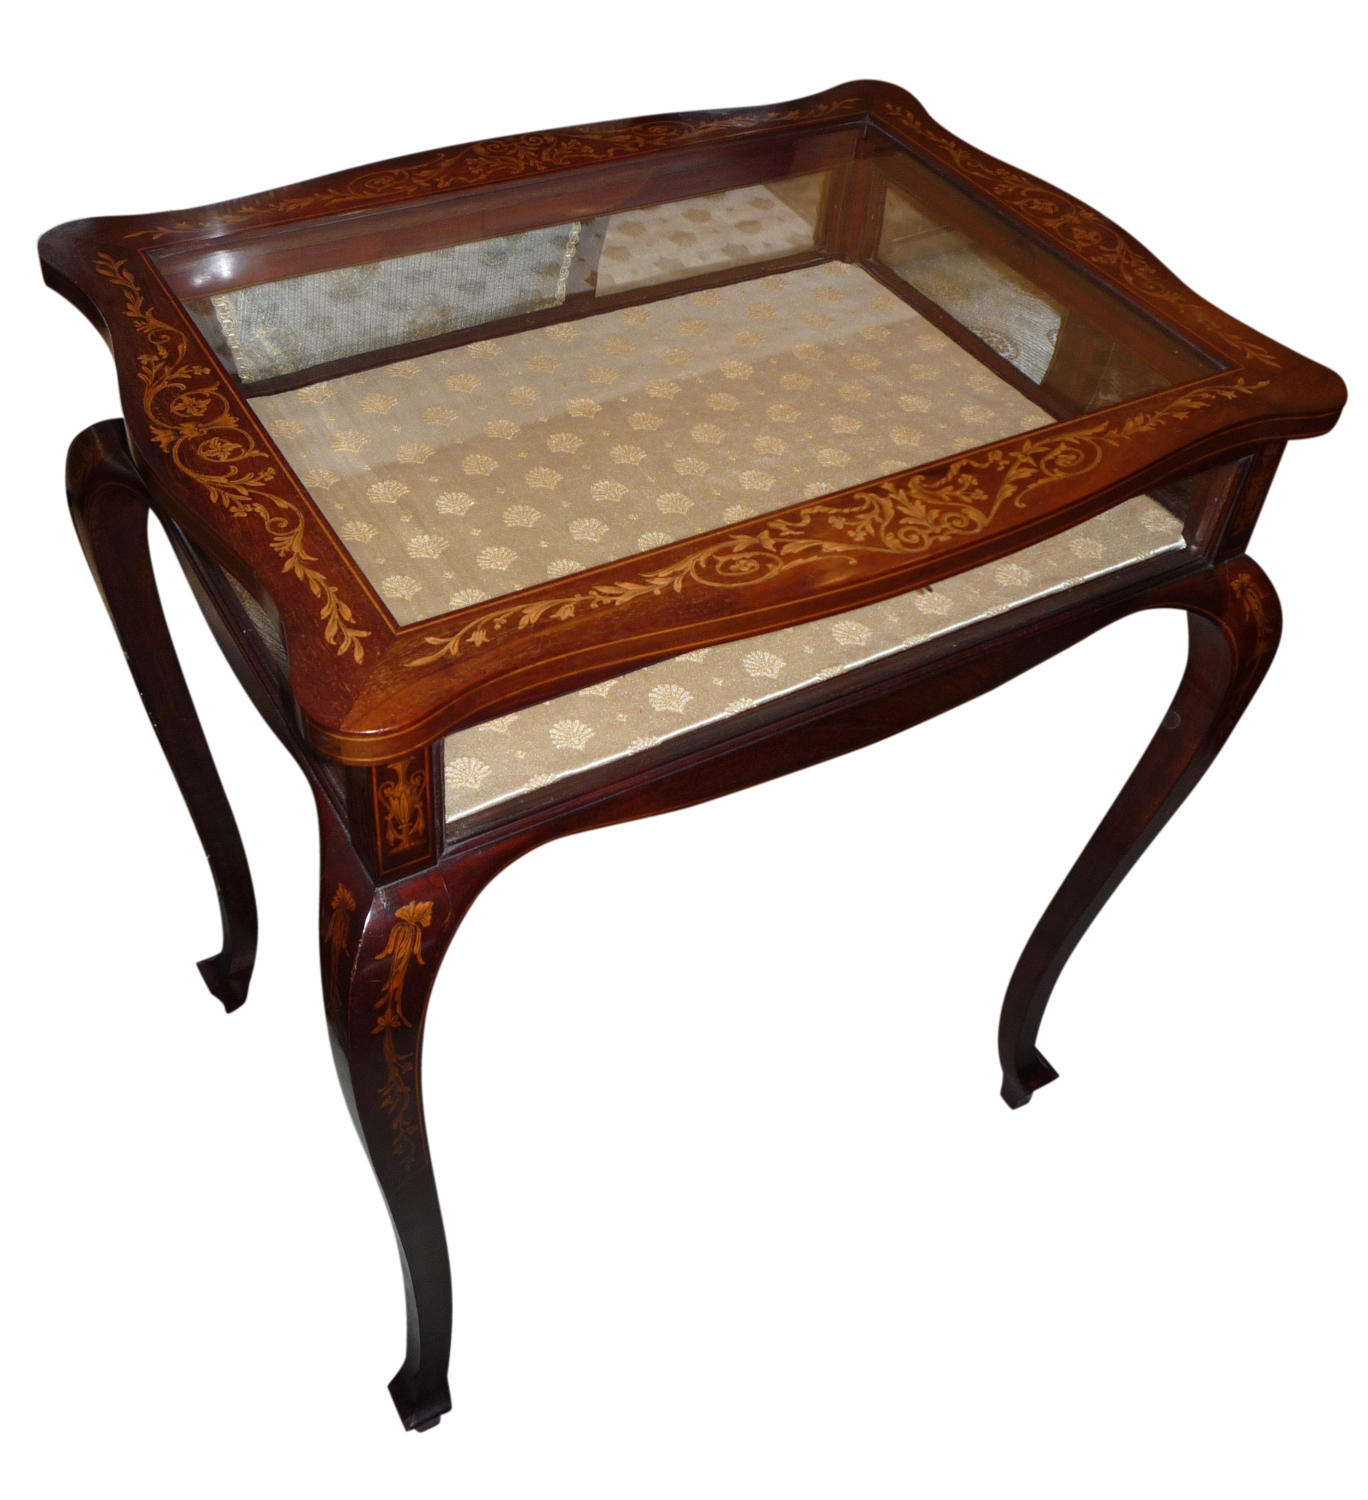 A mahogany inlaid display table circa 1900